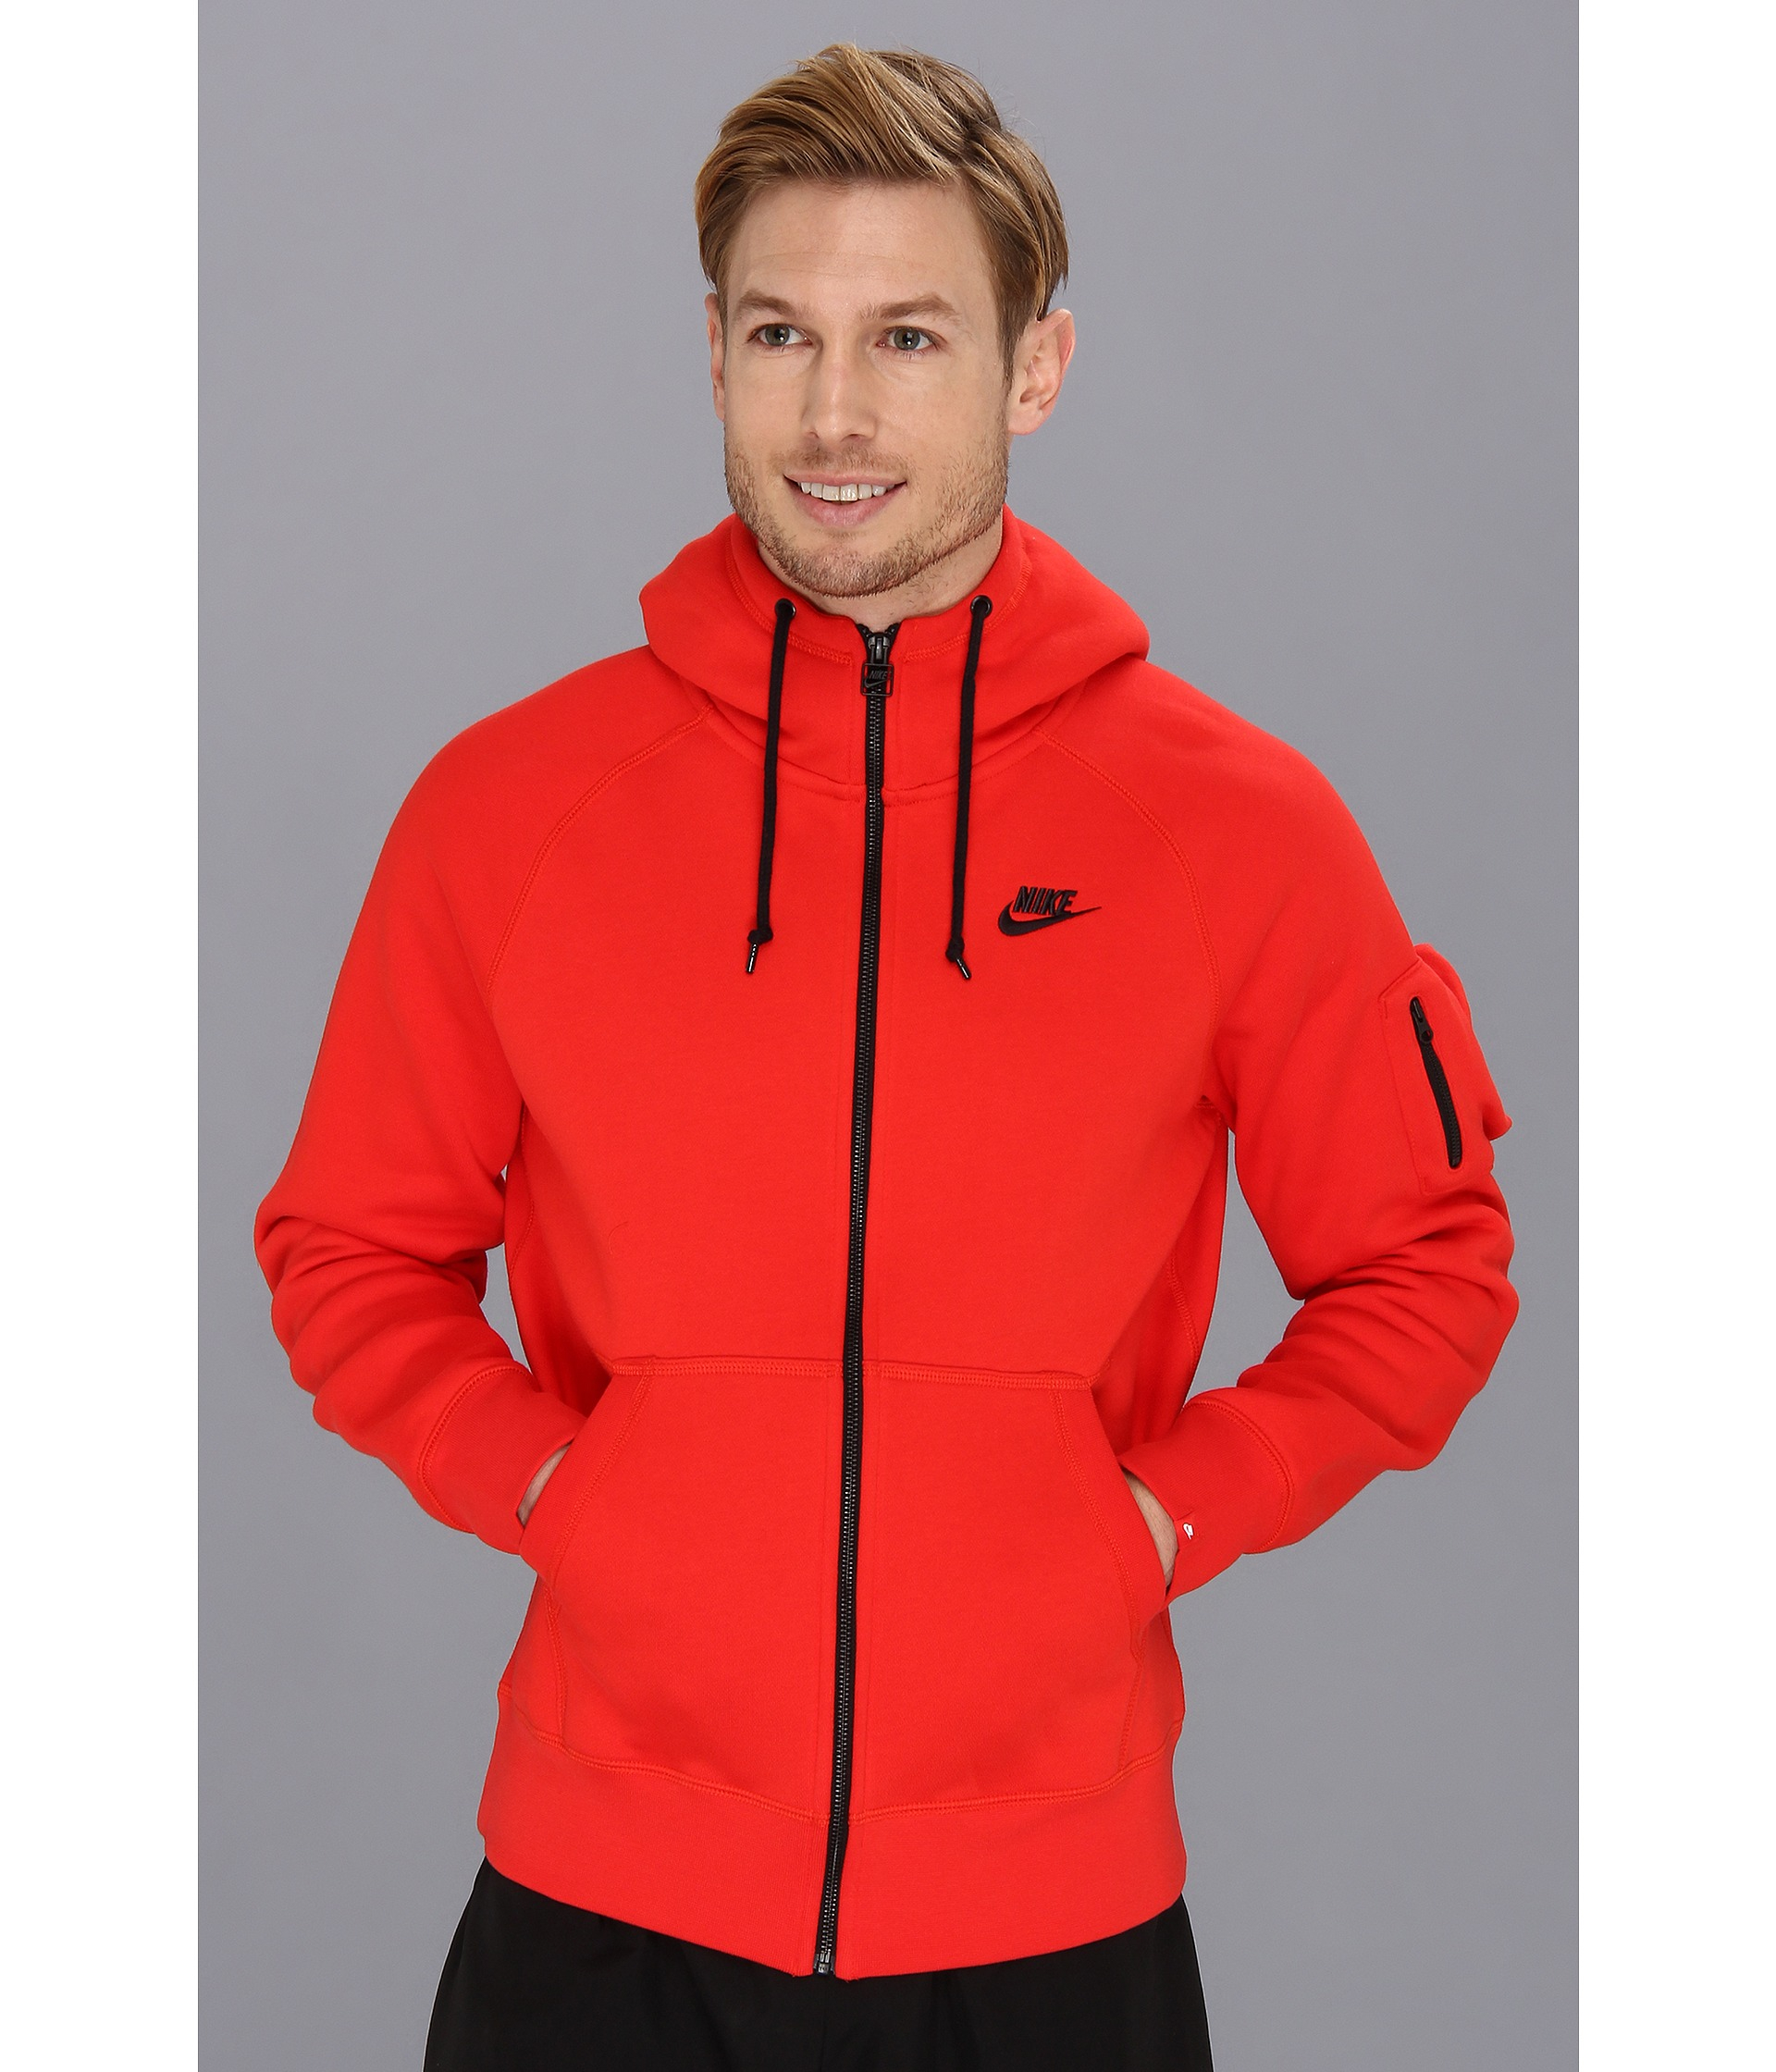 04c0f536ea Lyst - Nike Aw77 Fleece Fz Hoodie in Red for Men